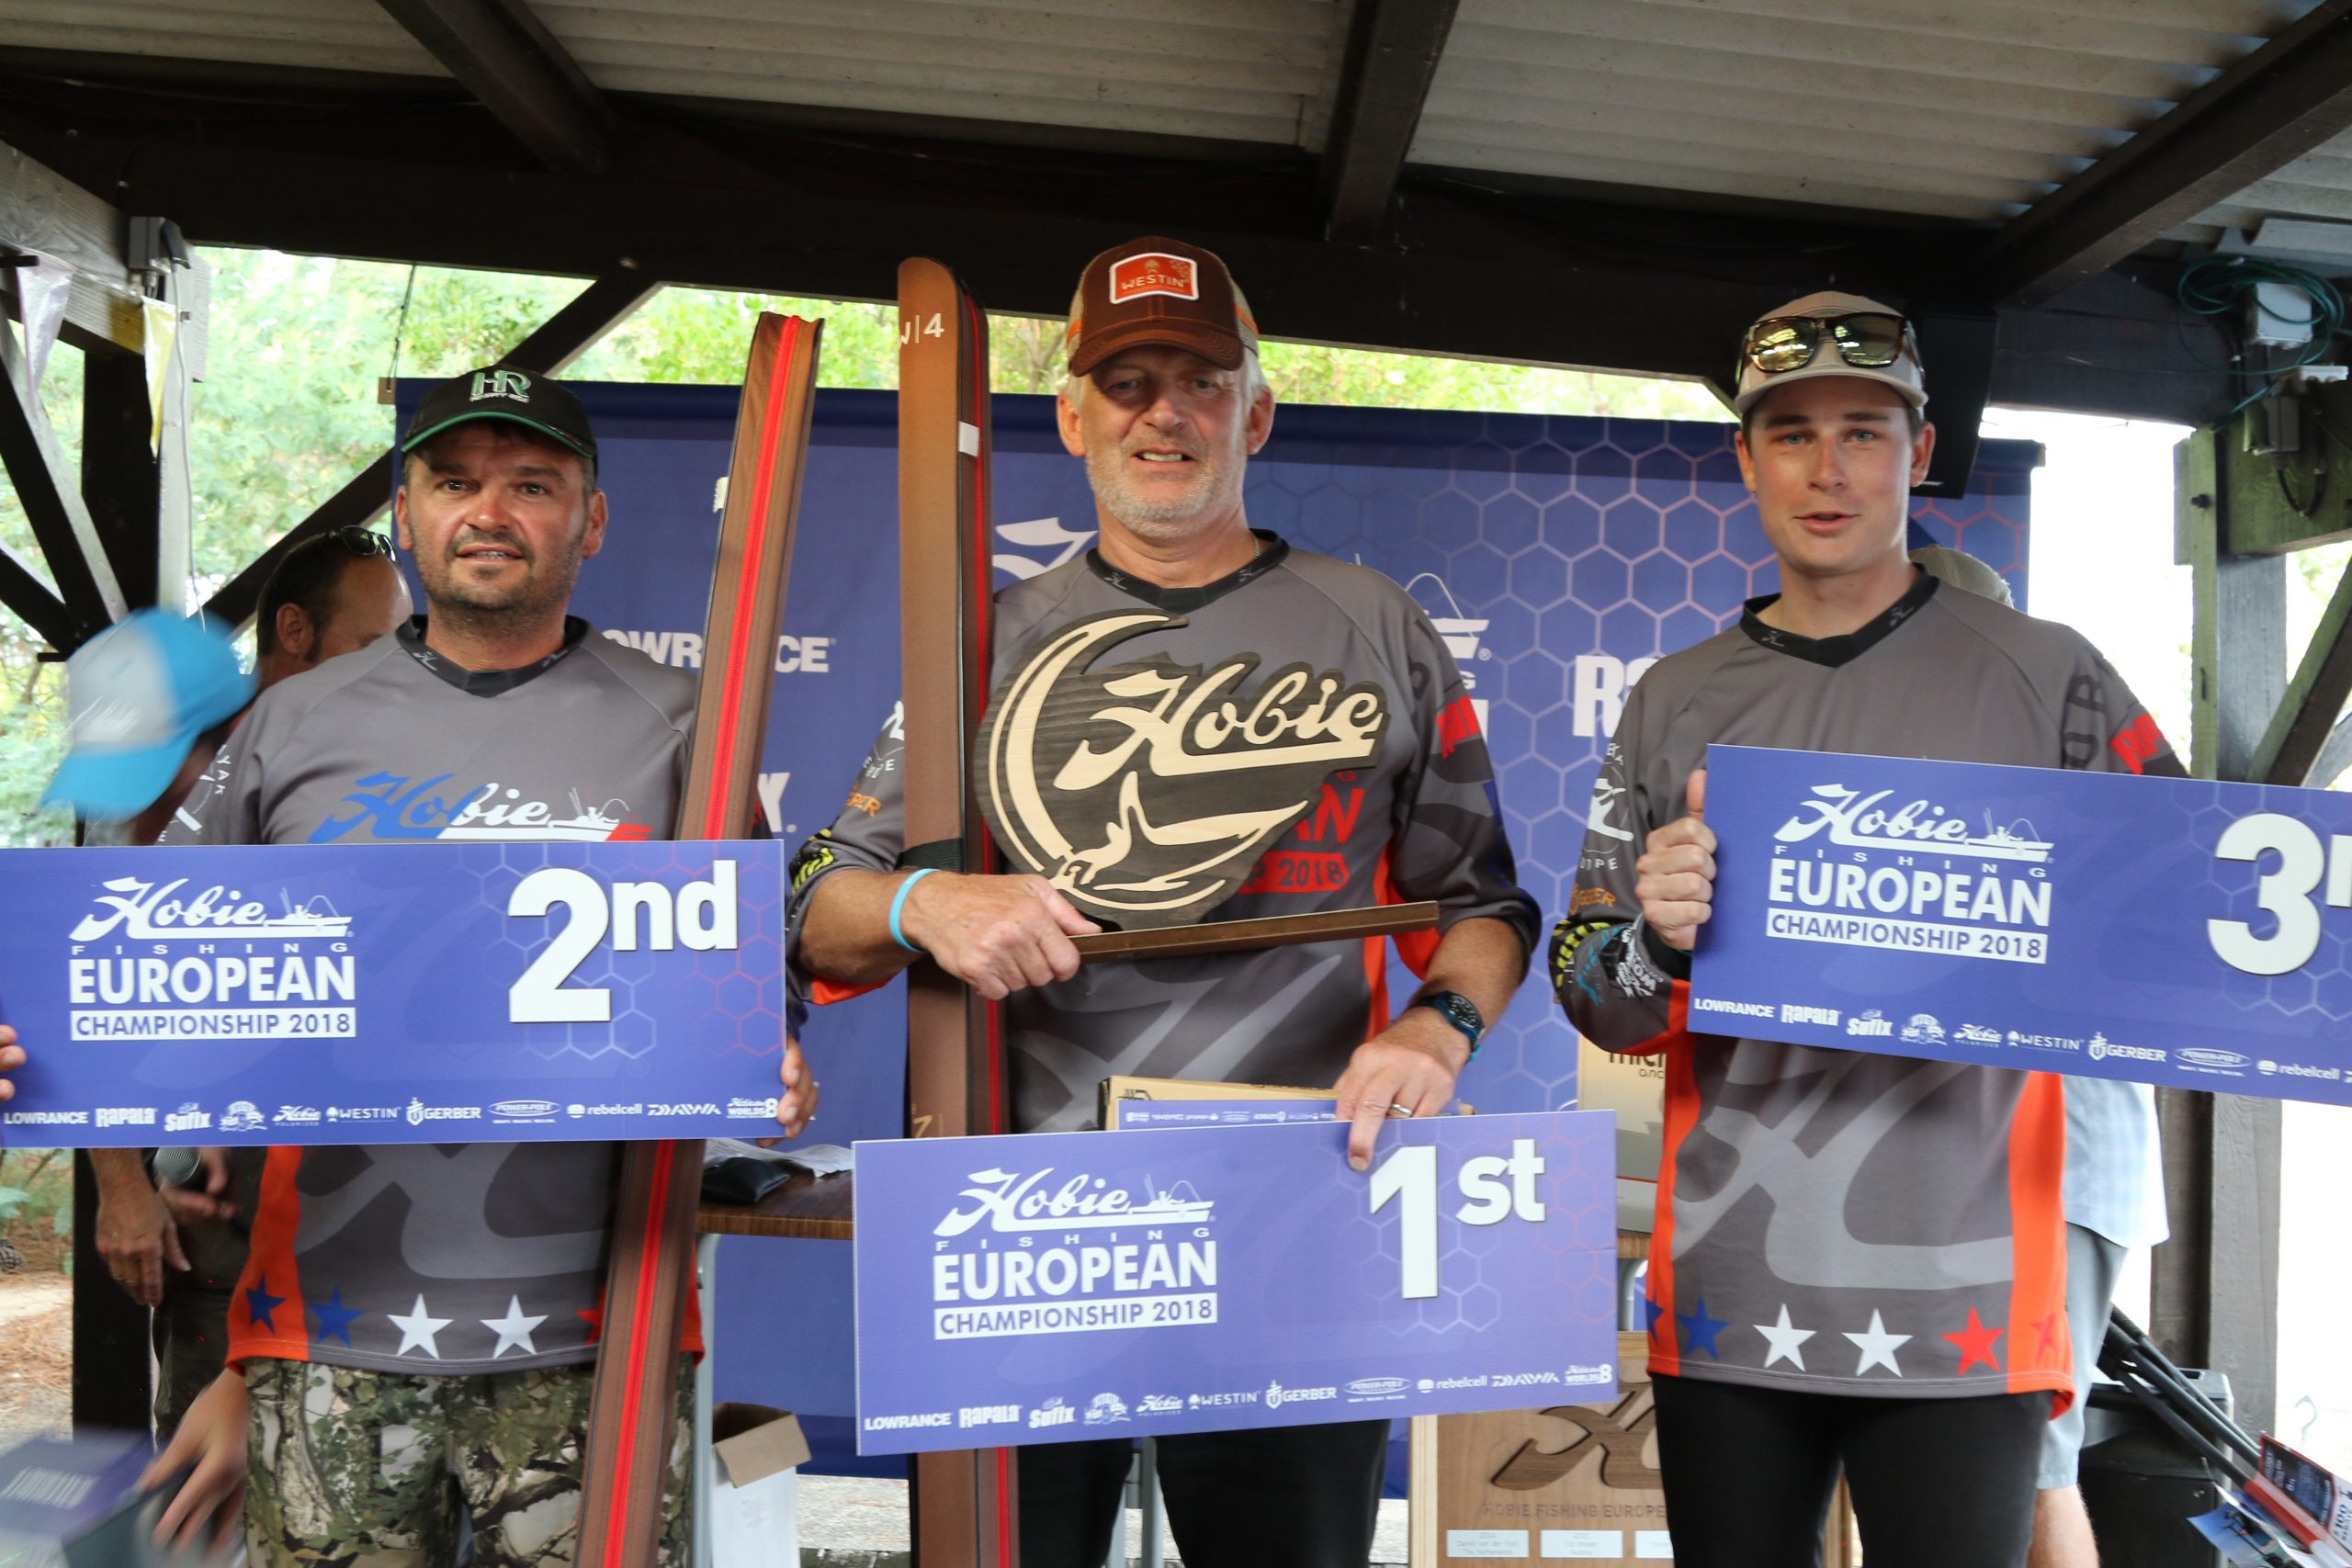 Micheal McGuire (UK) is the 5th Hobie Fishing European Champion!!